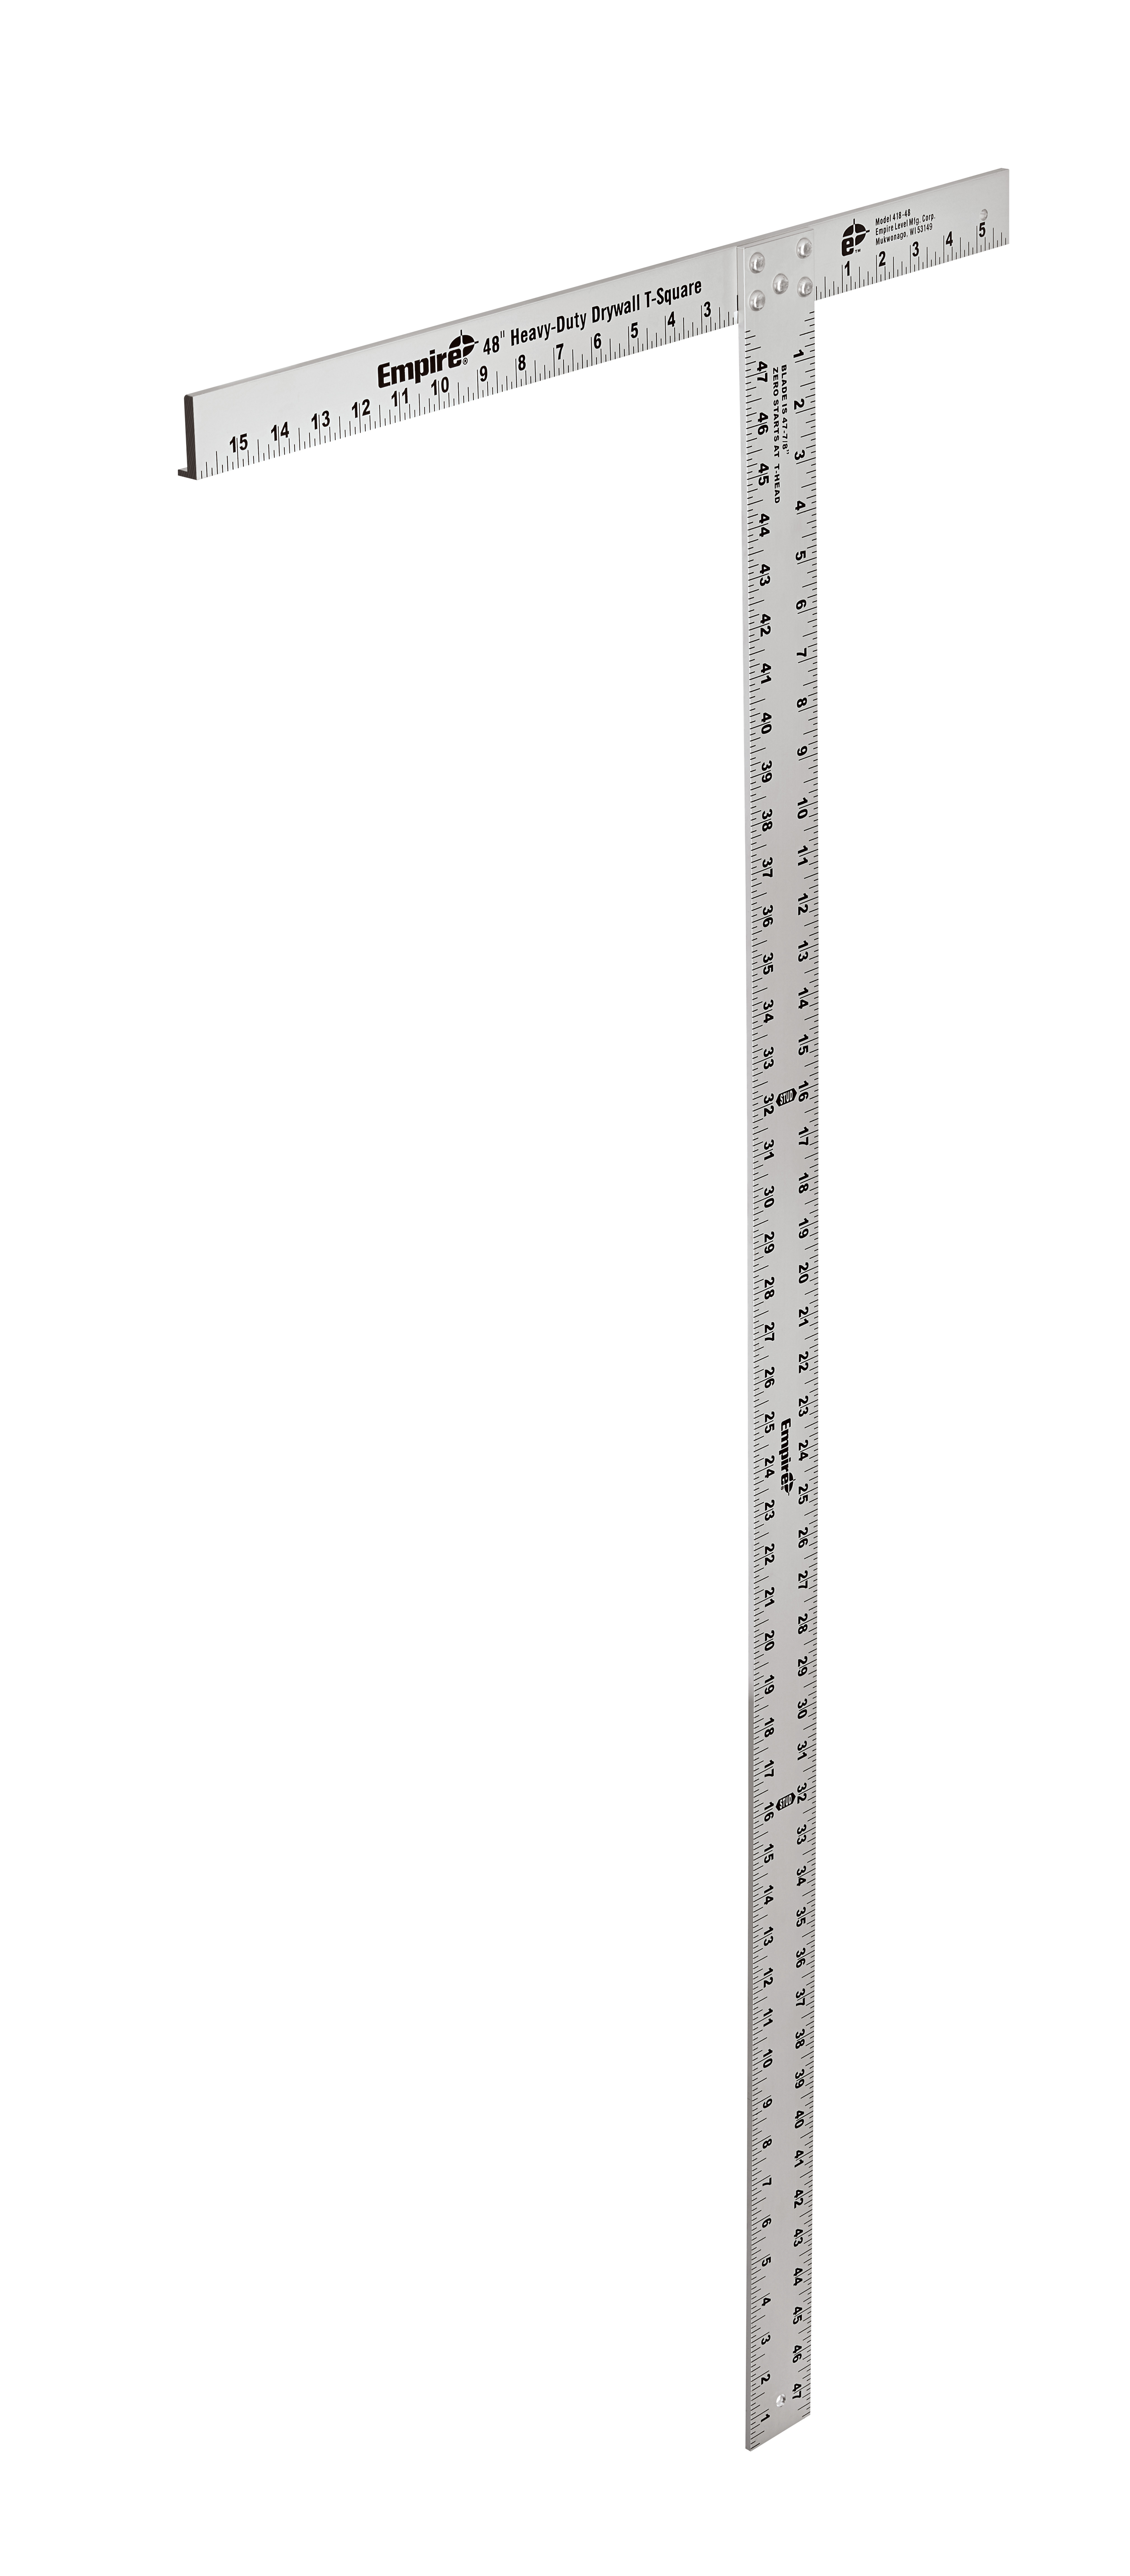 Milwaukee® Empire® 418-48 Drywall Heavy Duty Professional T-Square, 48 in L, 1/8 in Graduation, 48 in Tongue, Aluminum